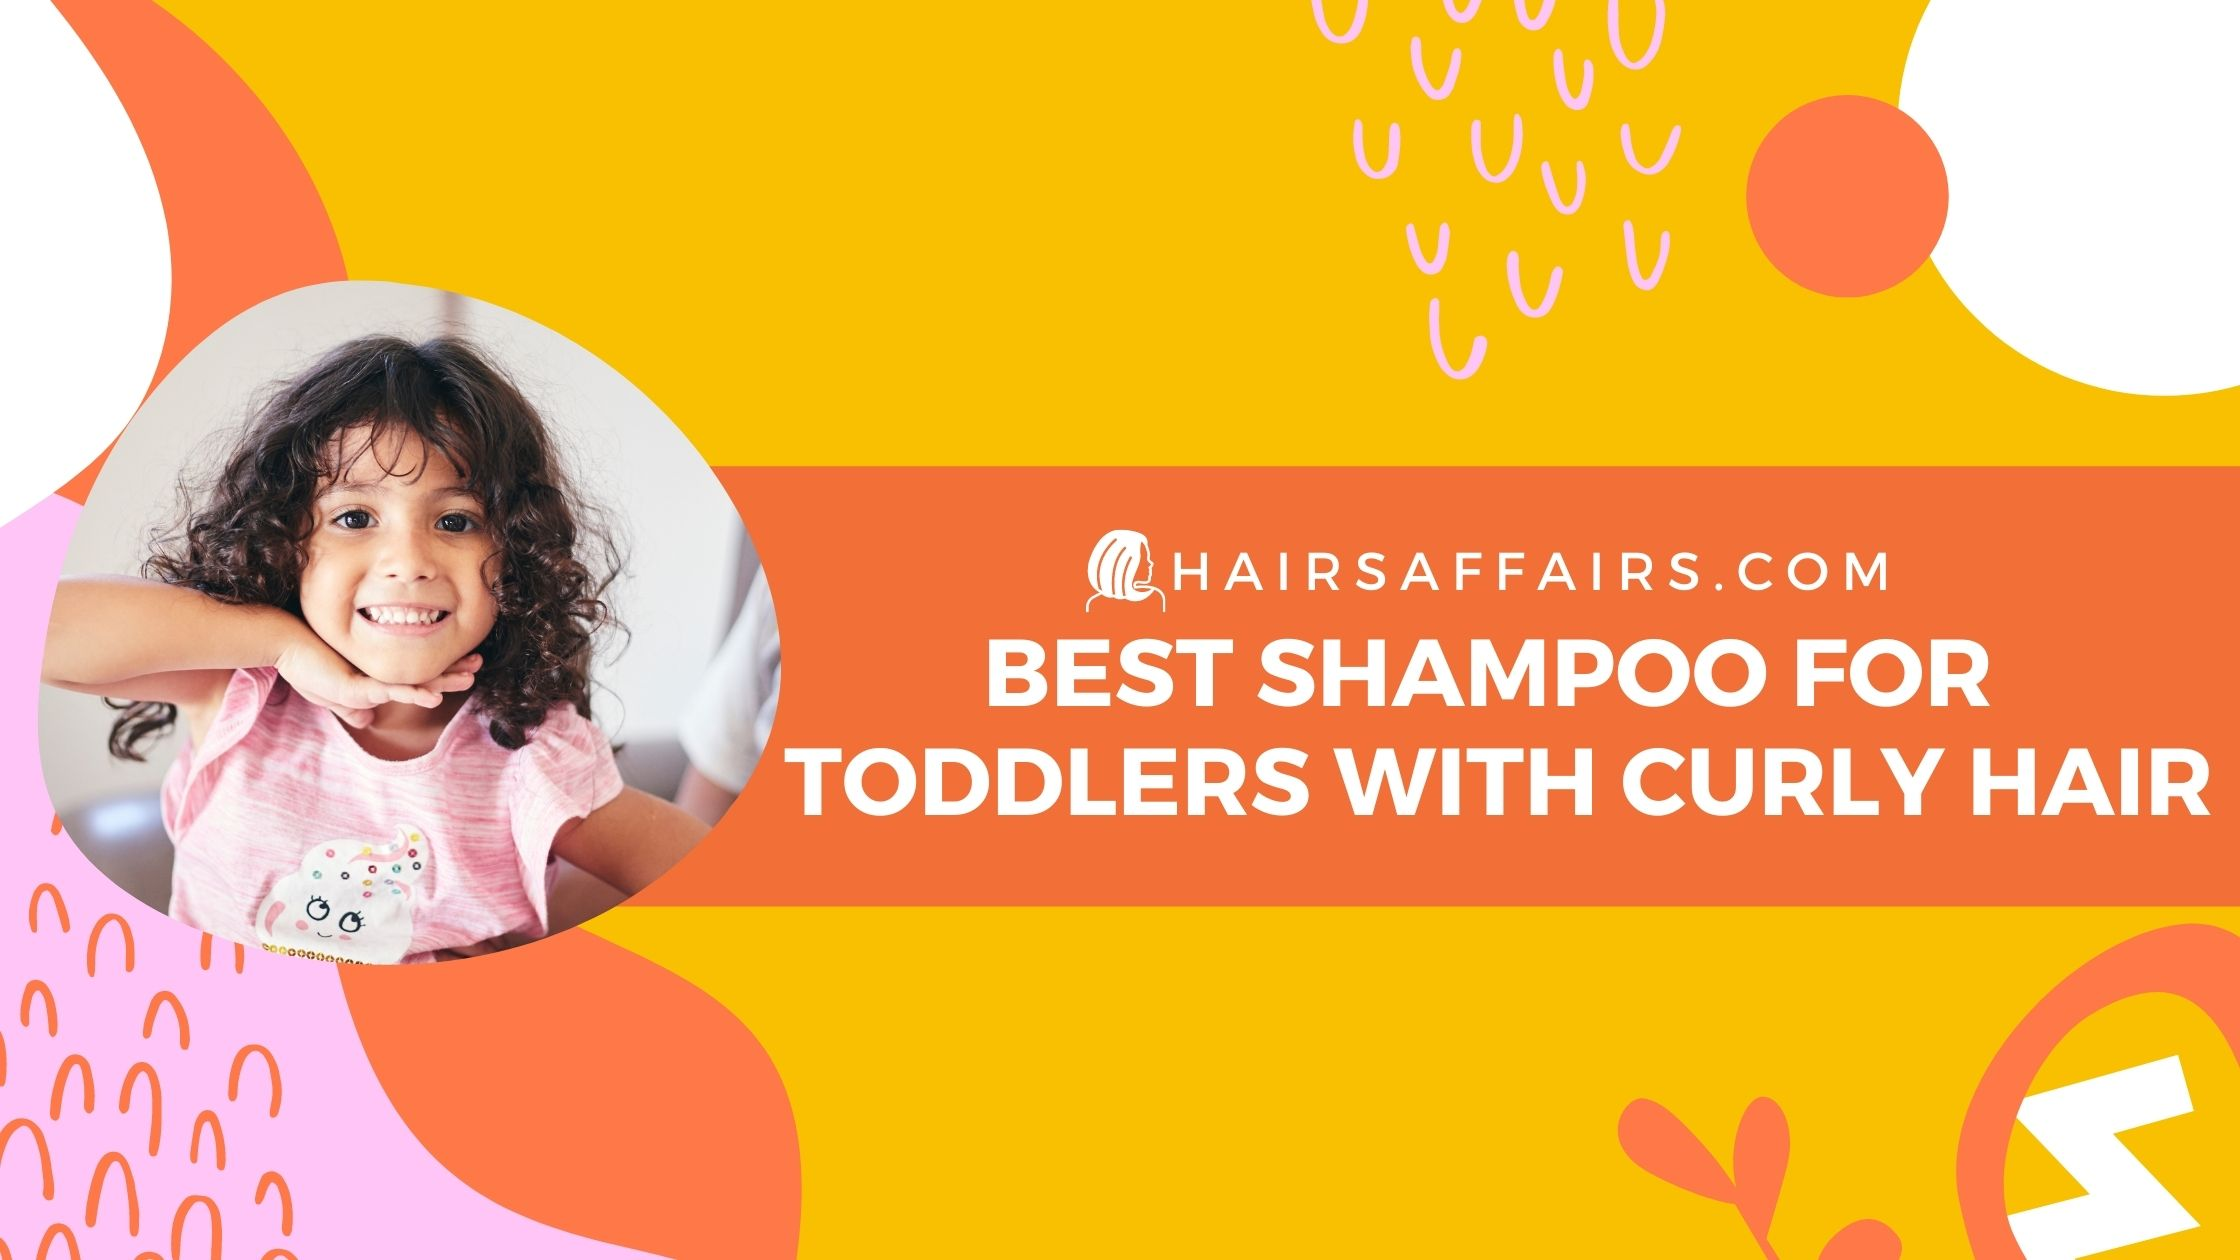 HA-Best-shampoo-for-toddlers-with-curly-hair-3